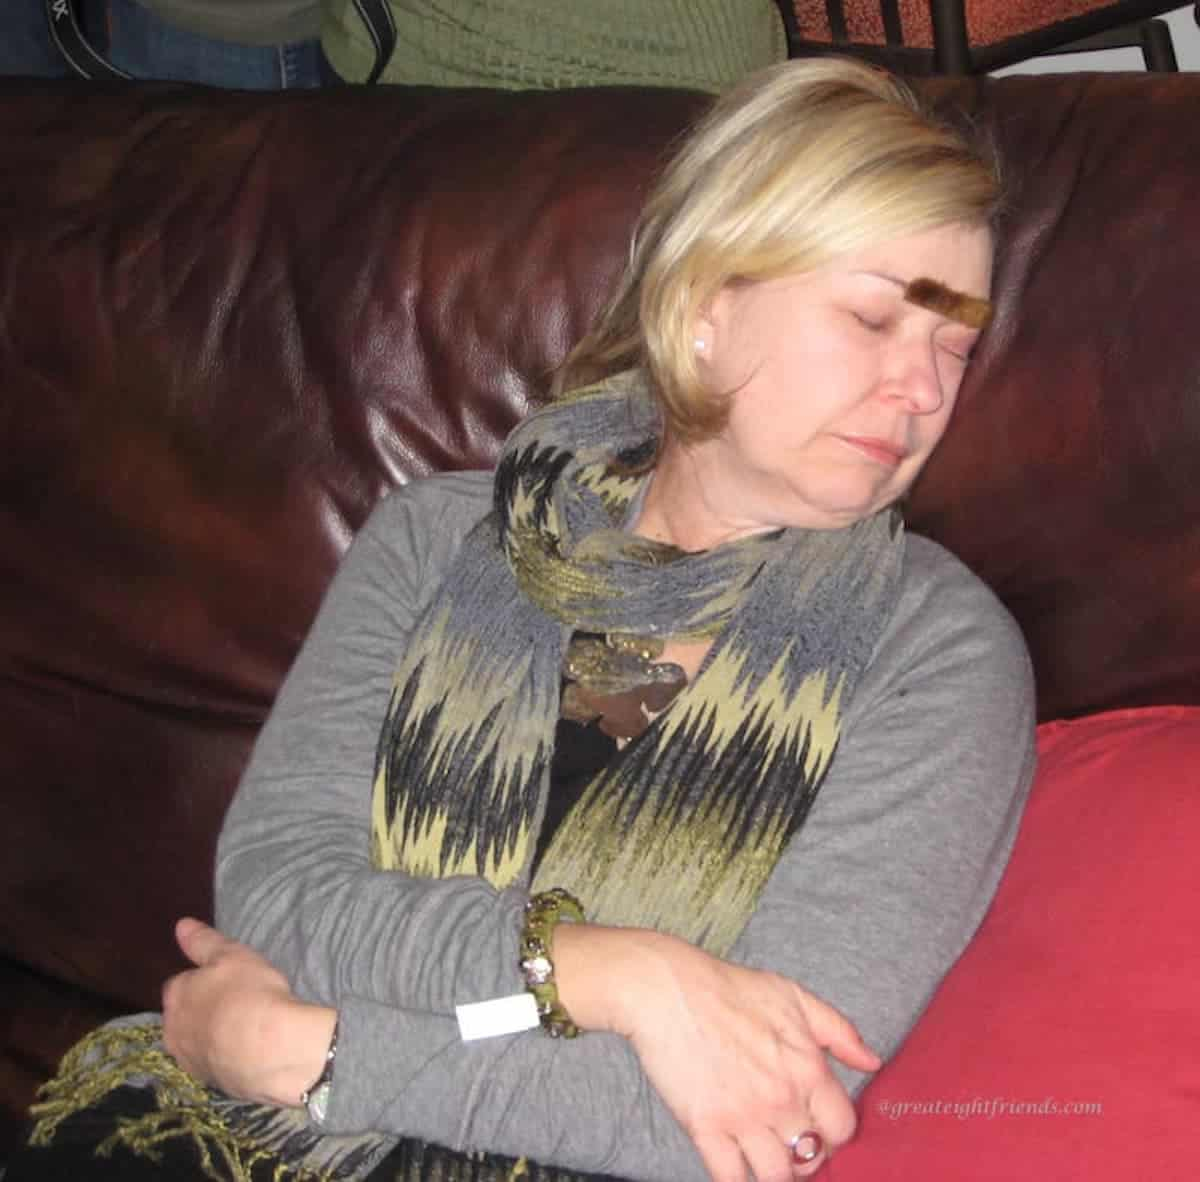 Woman asleep on a couch with a fake mustache on her forehead.